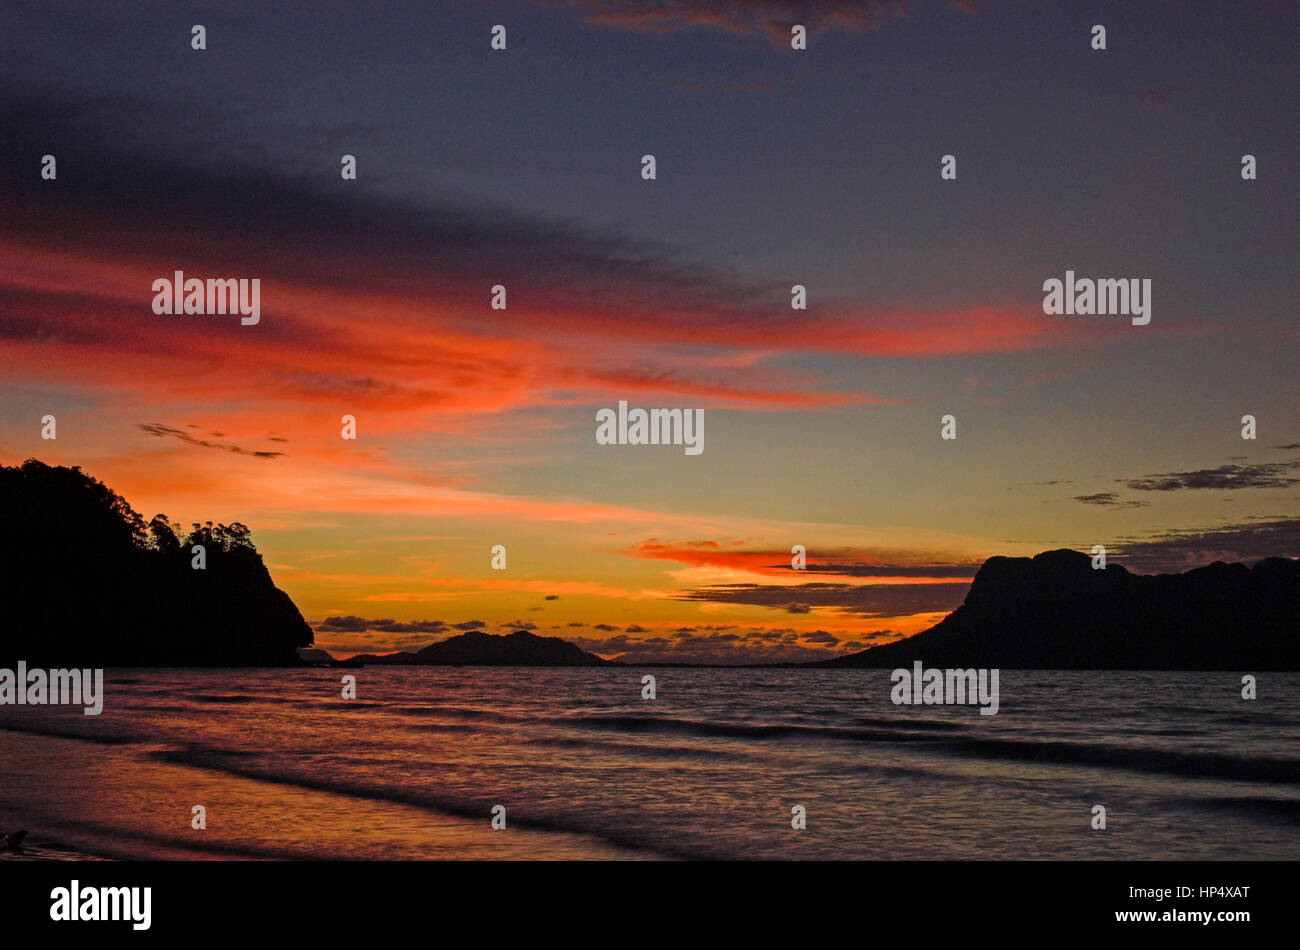 Landscape Tropical Beach Sunset With Incredible Colors